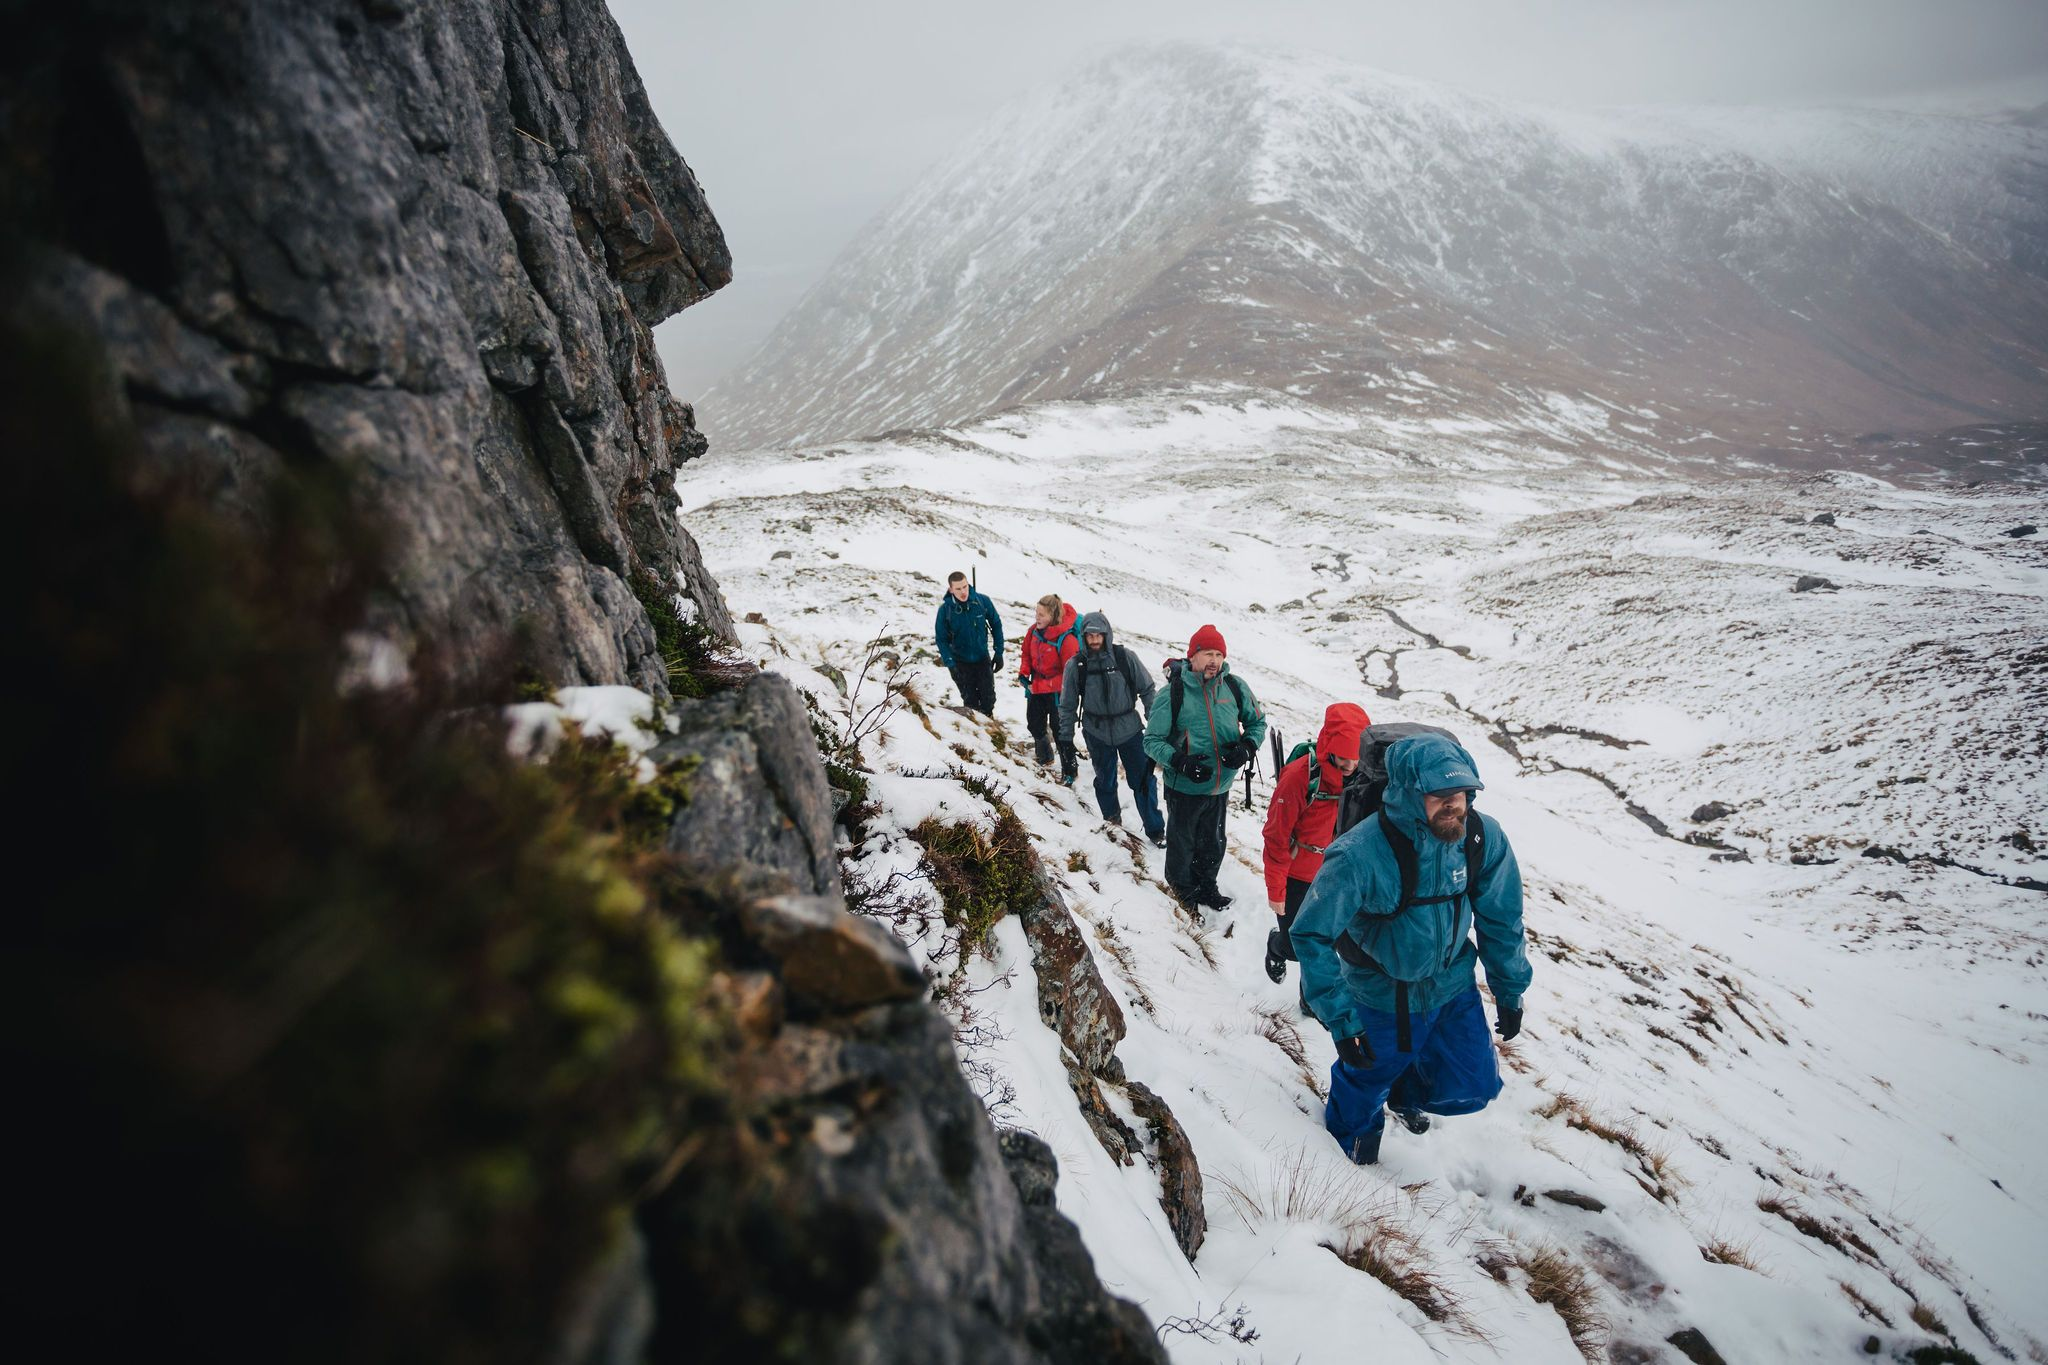 Ocean Vertical hiking climbing munro Scottish Highlands Glencoe Adventure photography by the adventure photographers